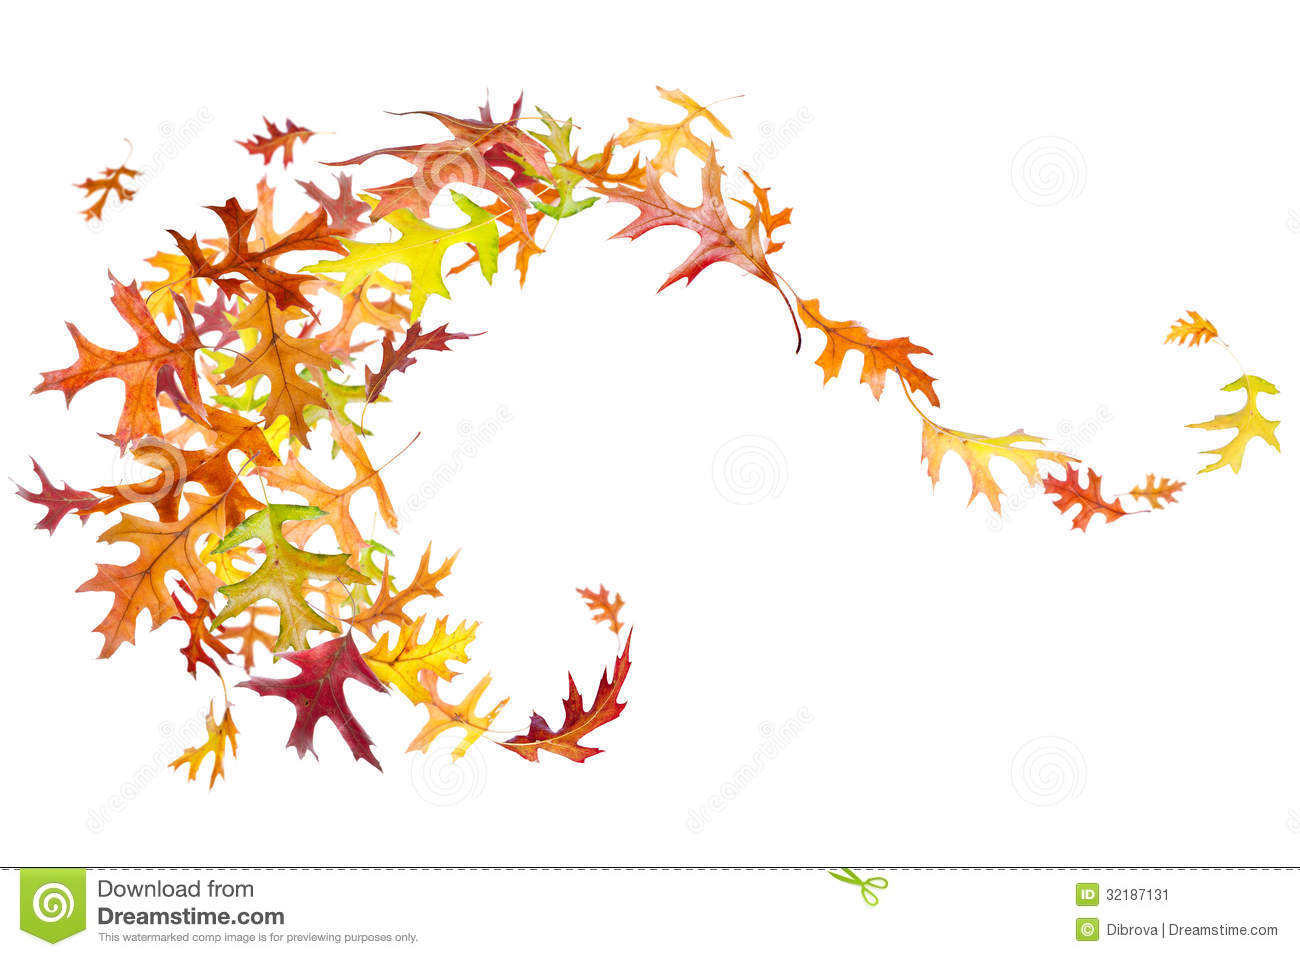 Fall Of The Leafe Wallpaper Swirl Of Autumn Leaves Stock Image Image Of Macro Fallen